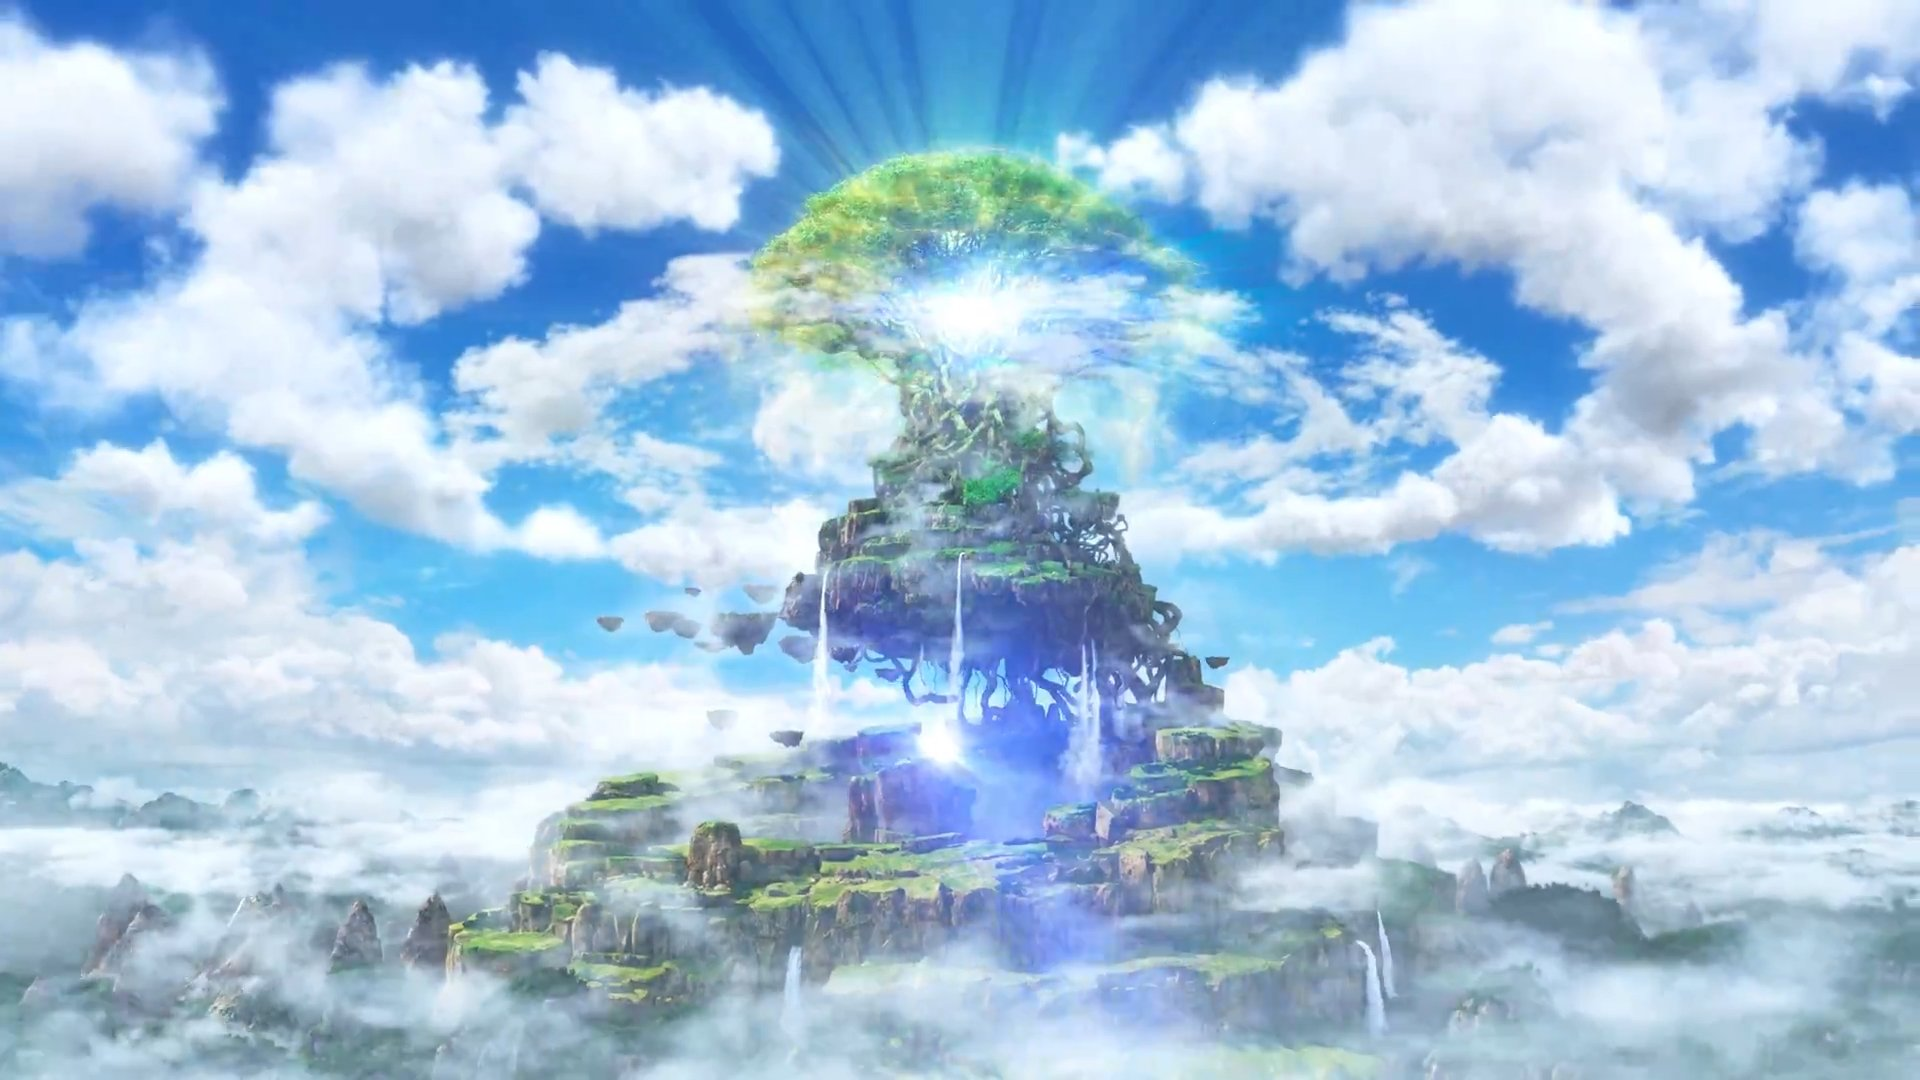 Dragon Quest Xi Wallpaper: Dragon Quest XI Launches In 2017 For The PS4 And 3DS